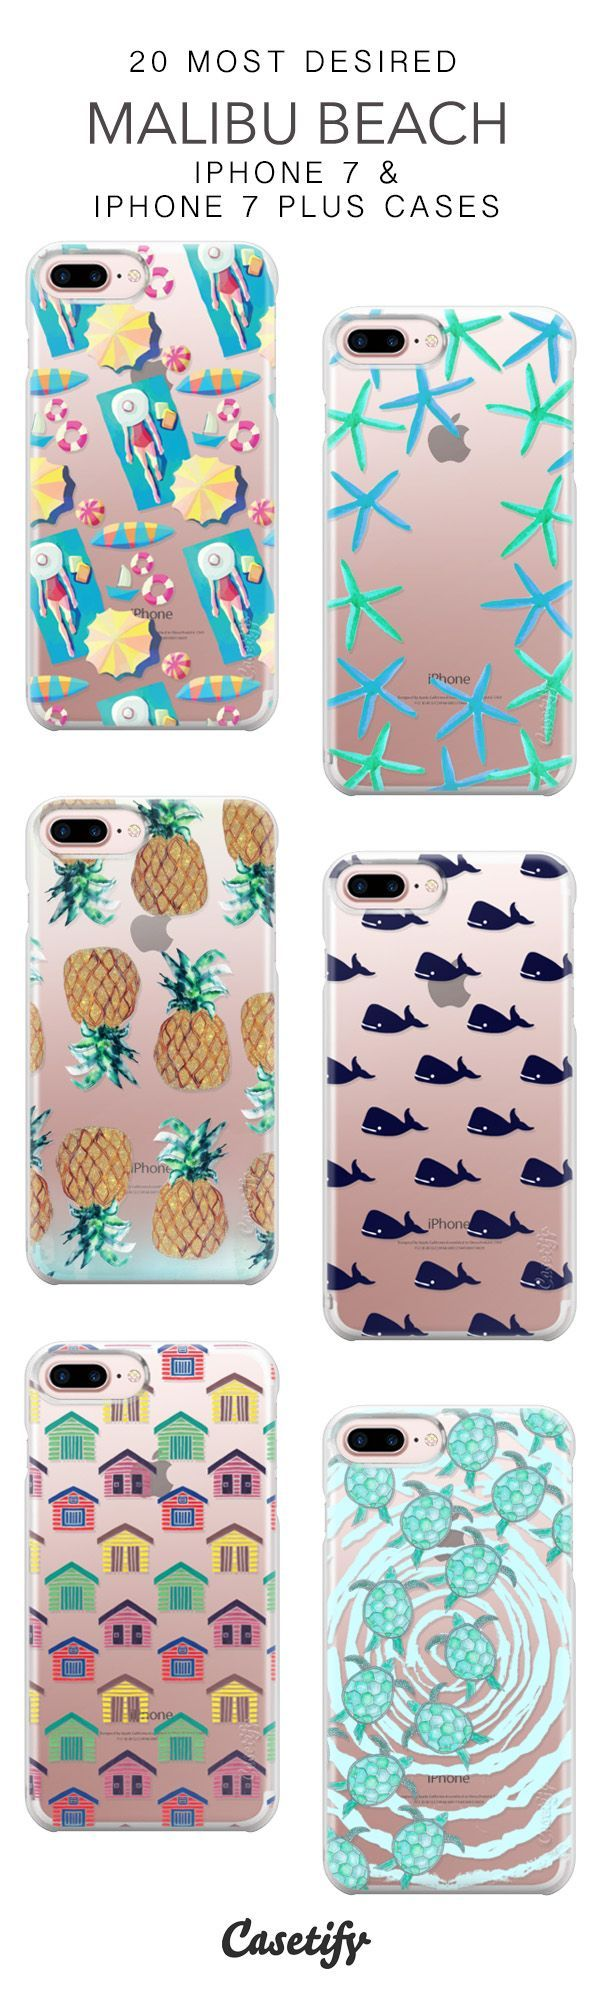 20 Most Desired Malibu Beach Protective iPhone 7 Cases and iPhone 7 Plus Cases. More California iPhone case here > https://www.casetify.com/collections/top_100_designs#/?vc=yhOfZ9OHGn #iphone7plus,